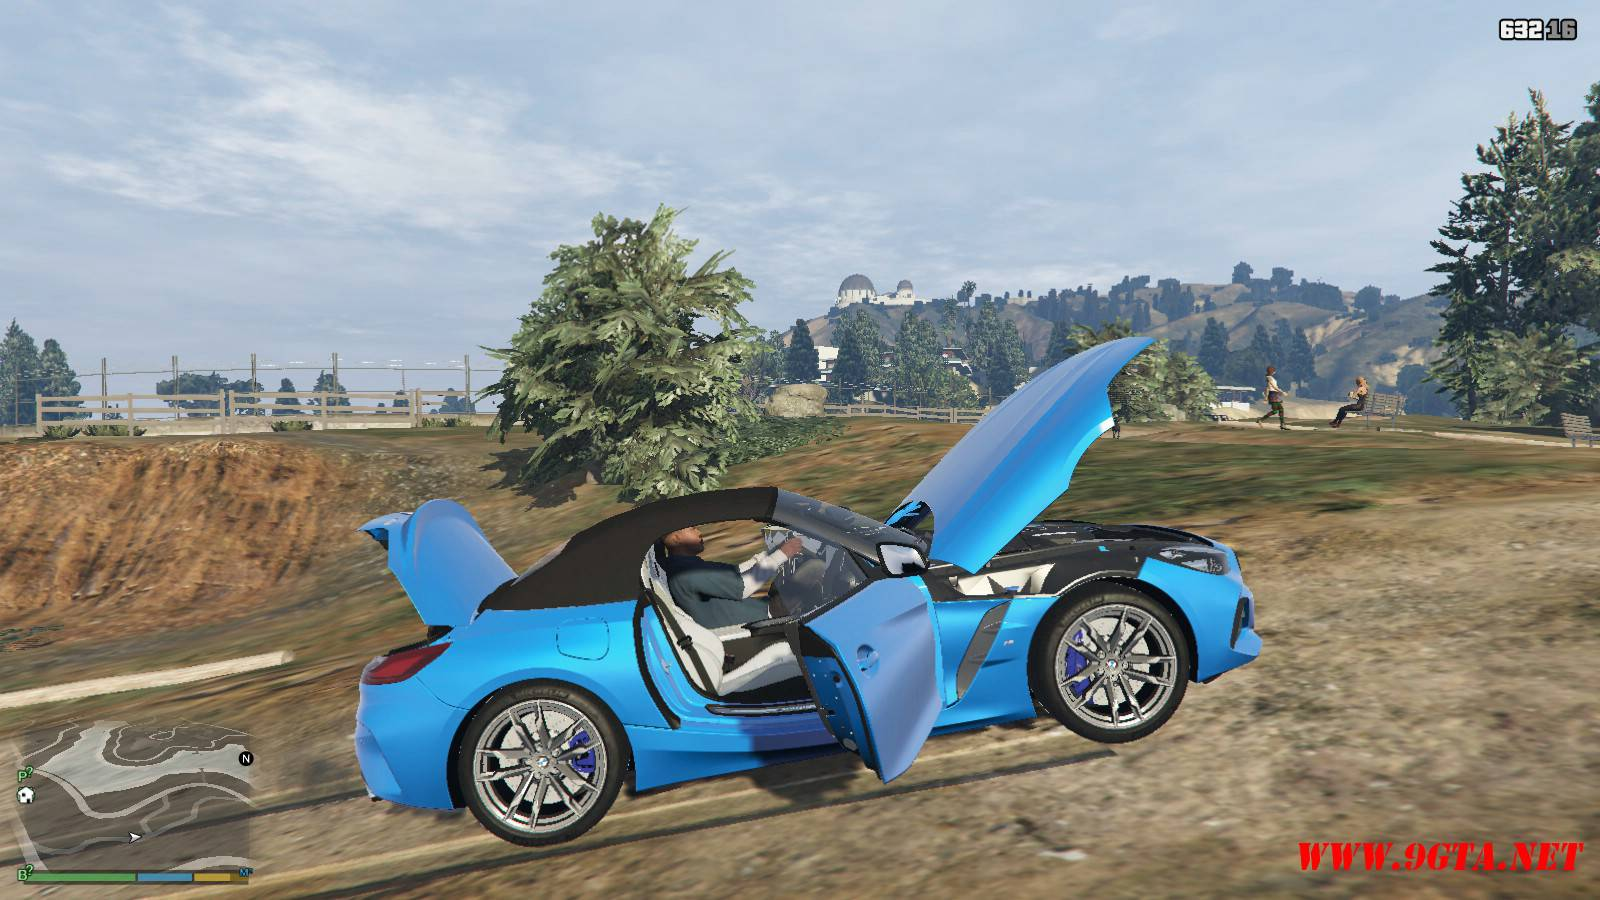 2019 BMW Z4 M40i v2.0 Mod For GTA5 (16)